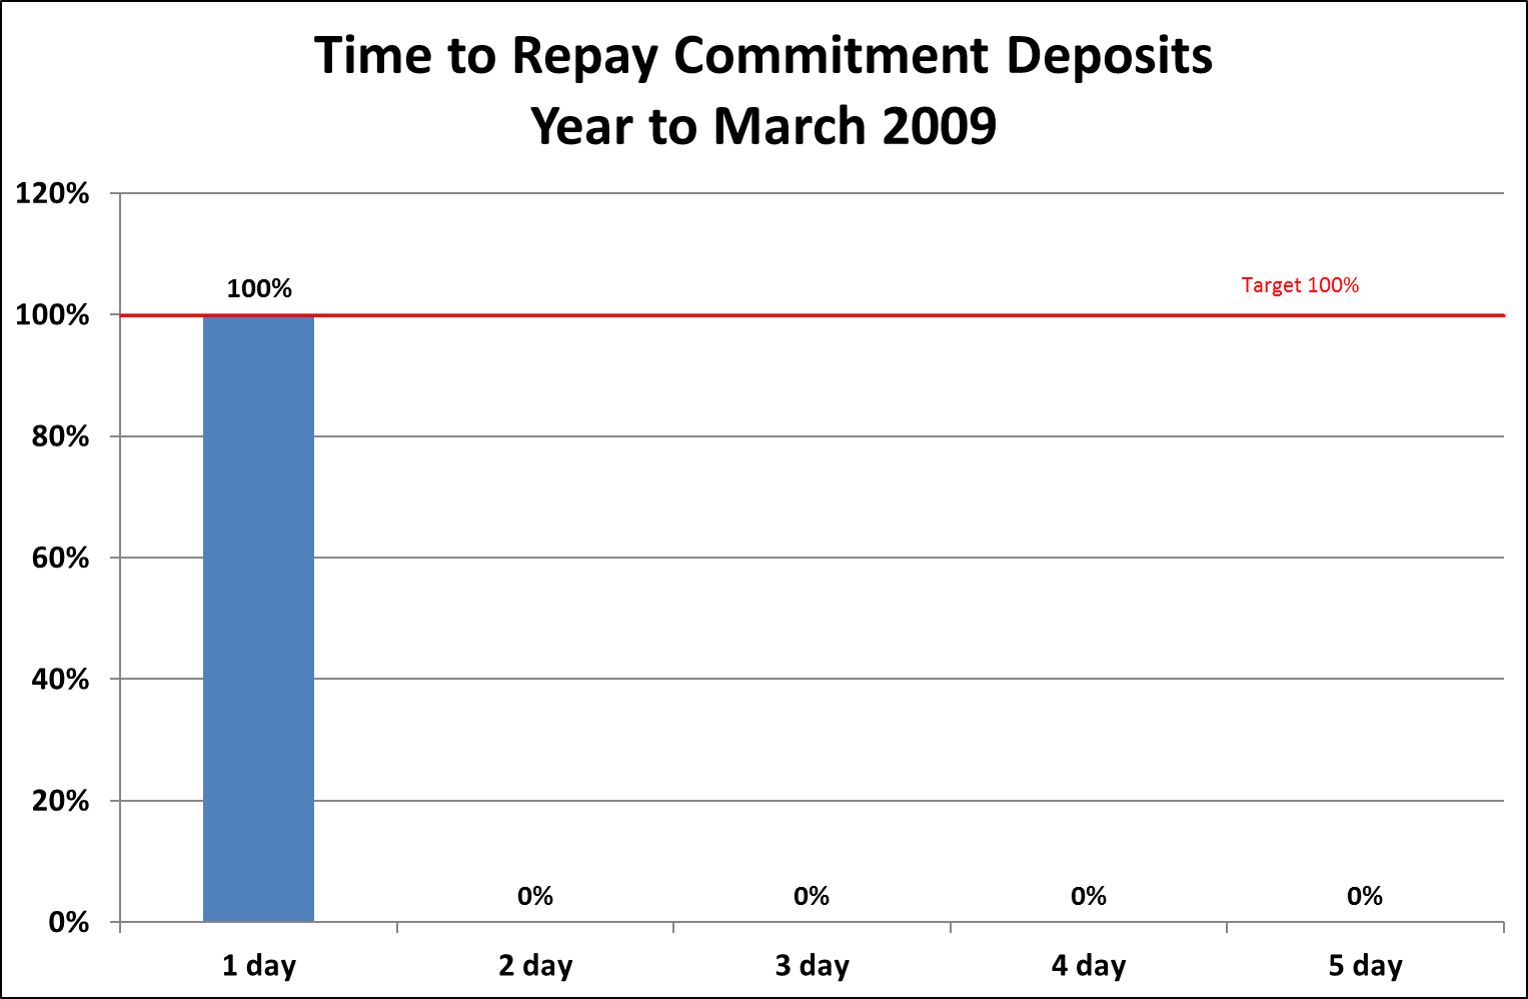 Commitment Deposit Time!